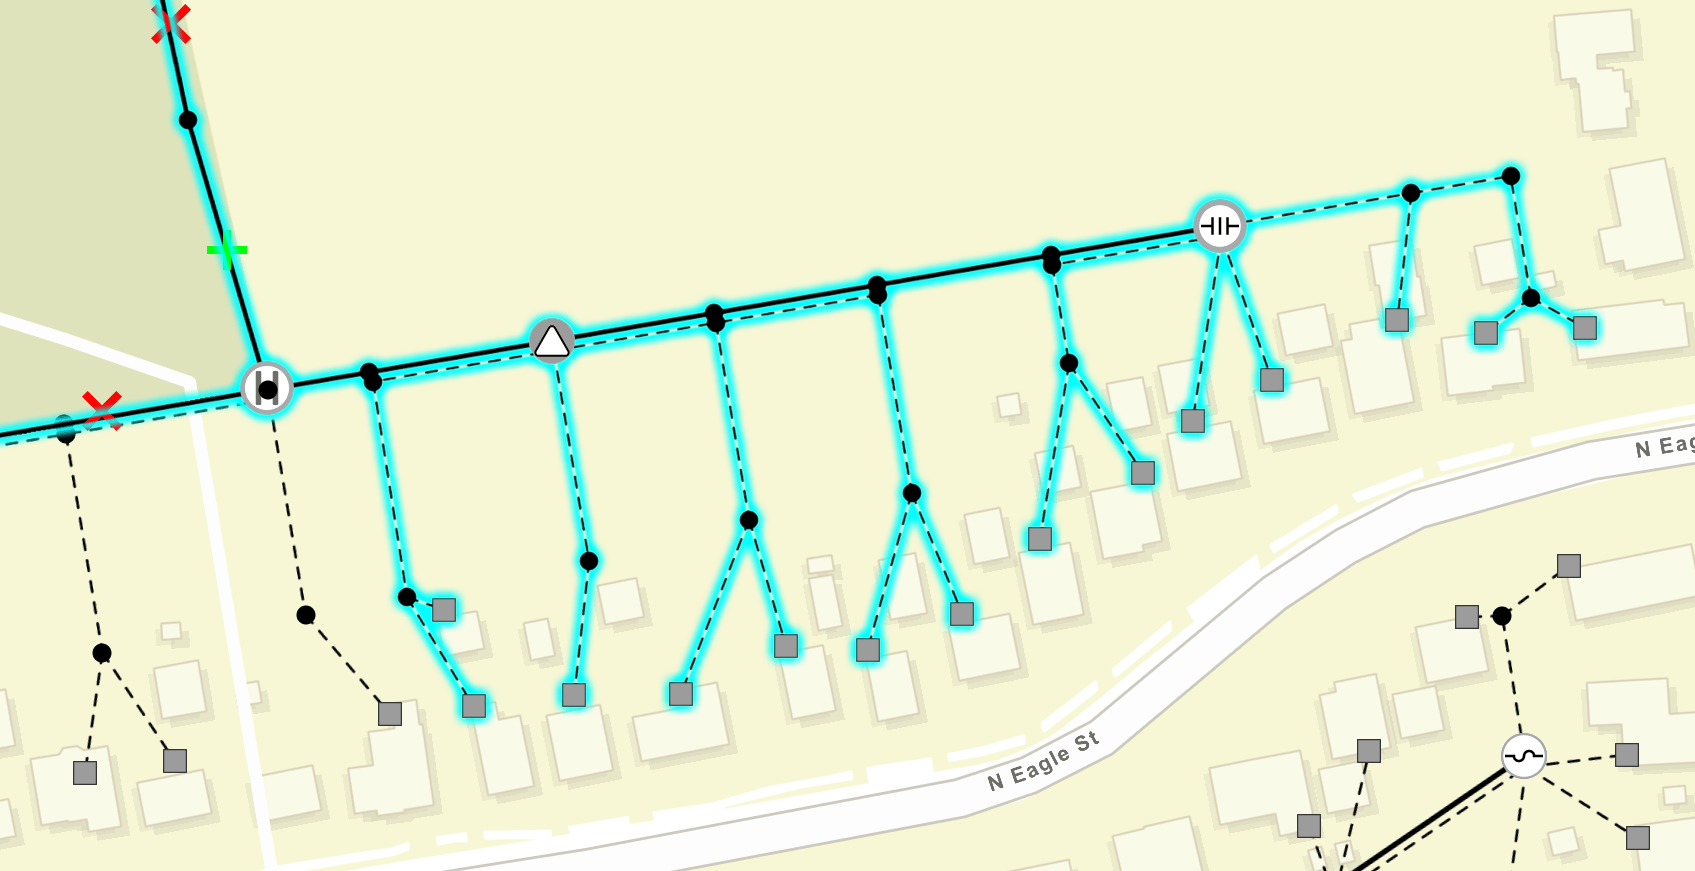 Utility Network Trace Result